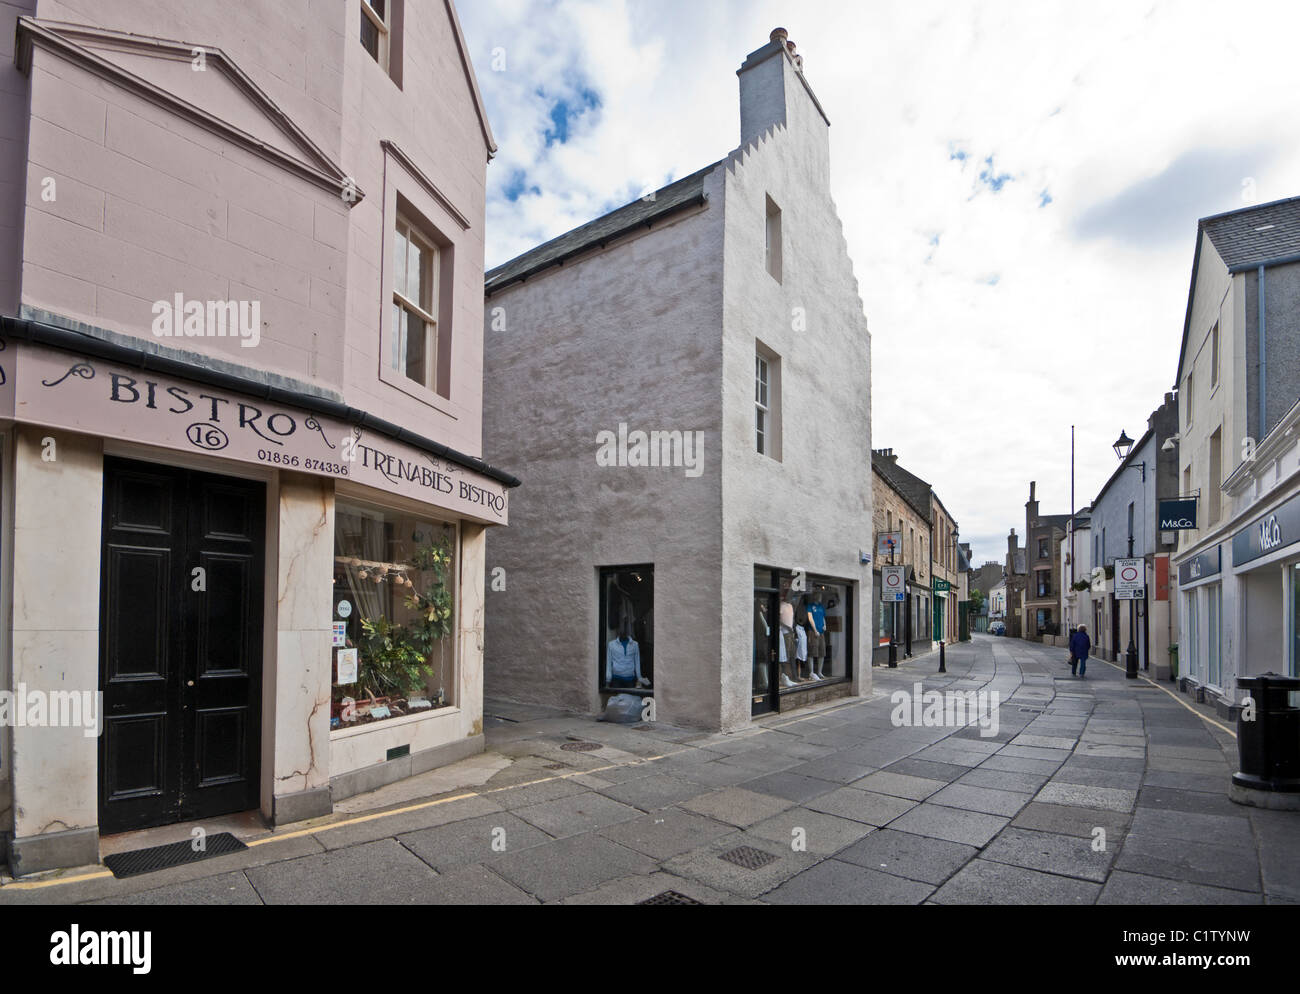 Pedestrianised Albert Street in Kirkwall Orkney Mainland Scotland with Trenabies Bistro - Stock Image